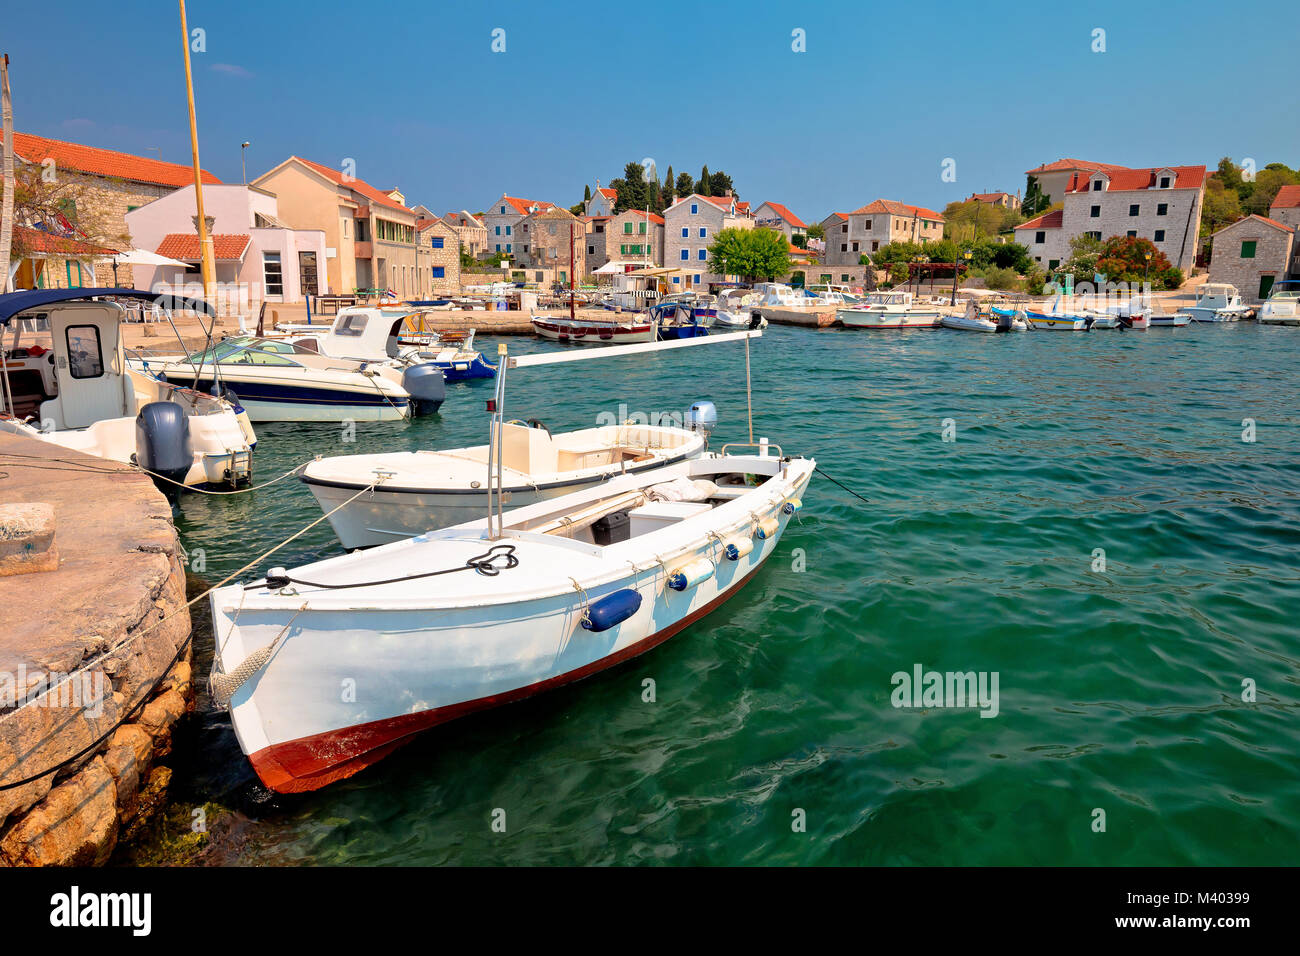 Island of Prvic turquoise harbor and waterfront view in Sepurine village, Sibenik archipelago of Croatia - Stock Image